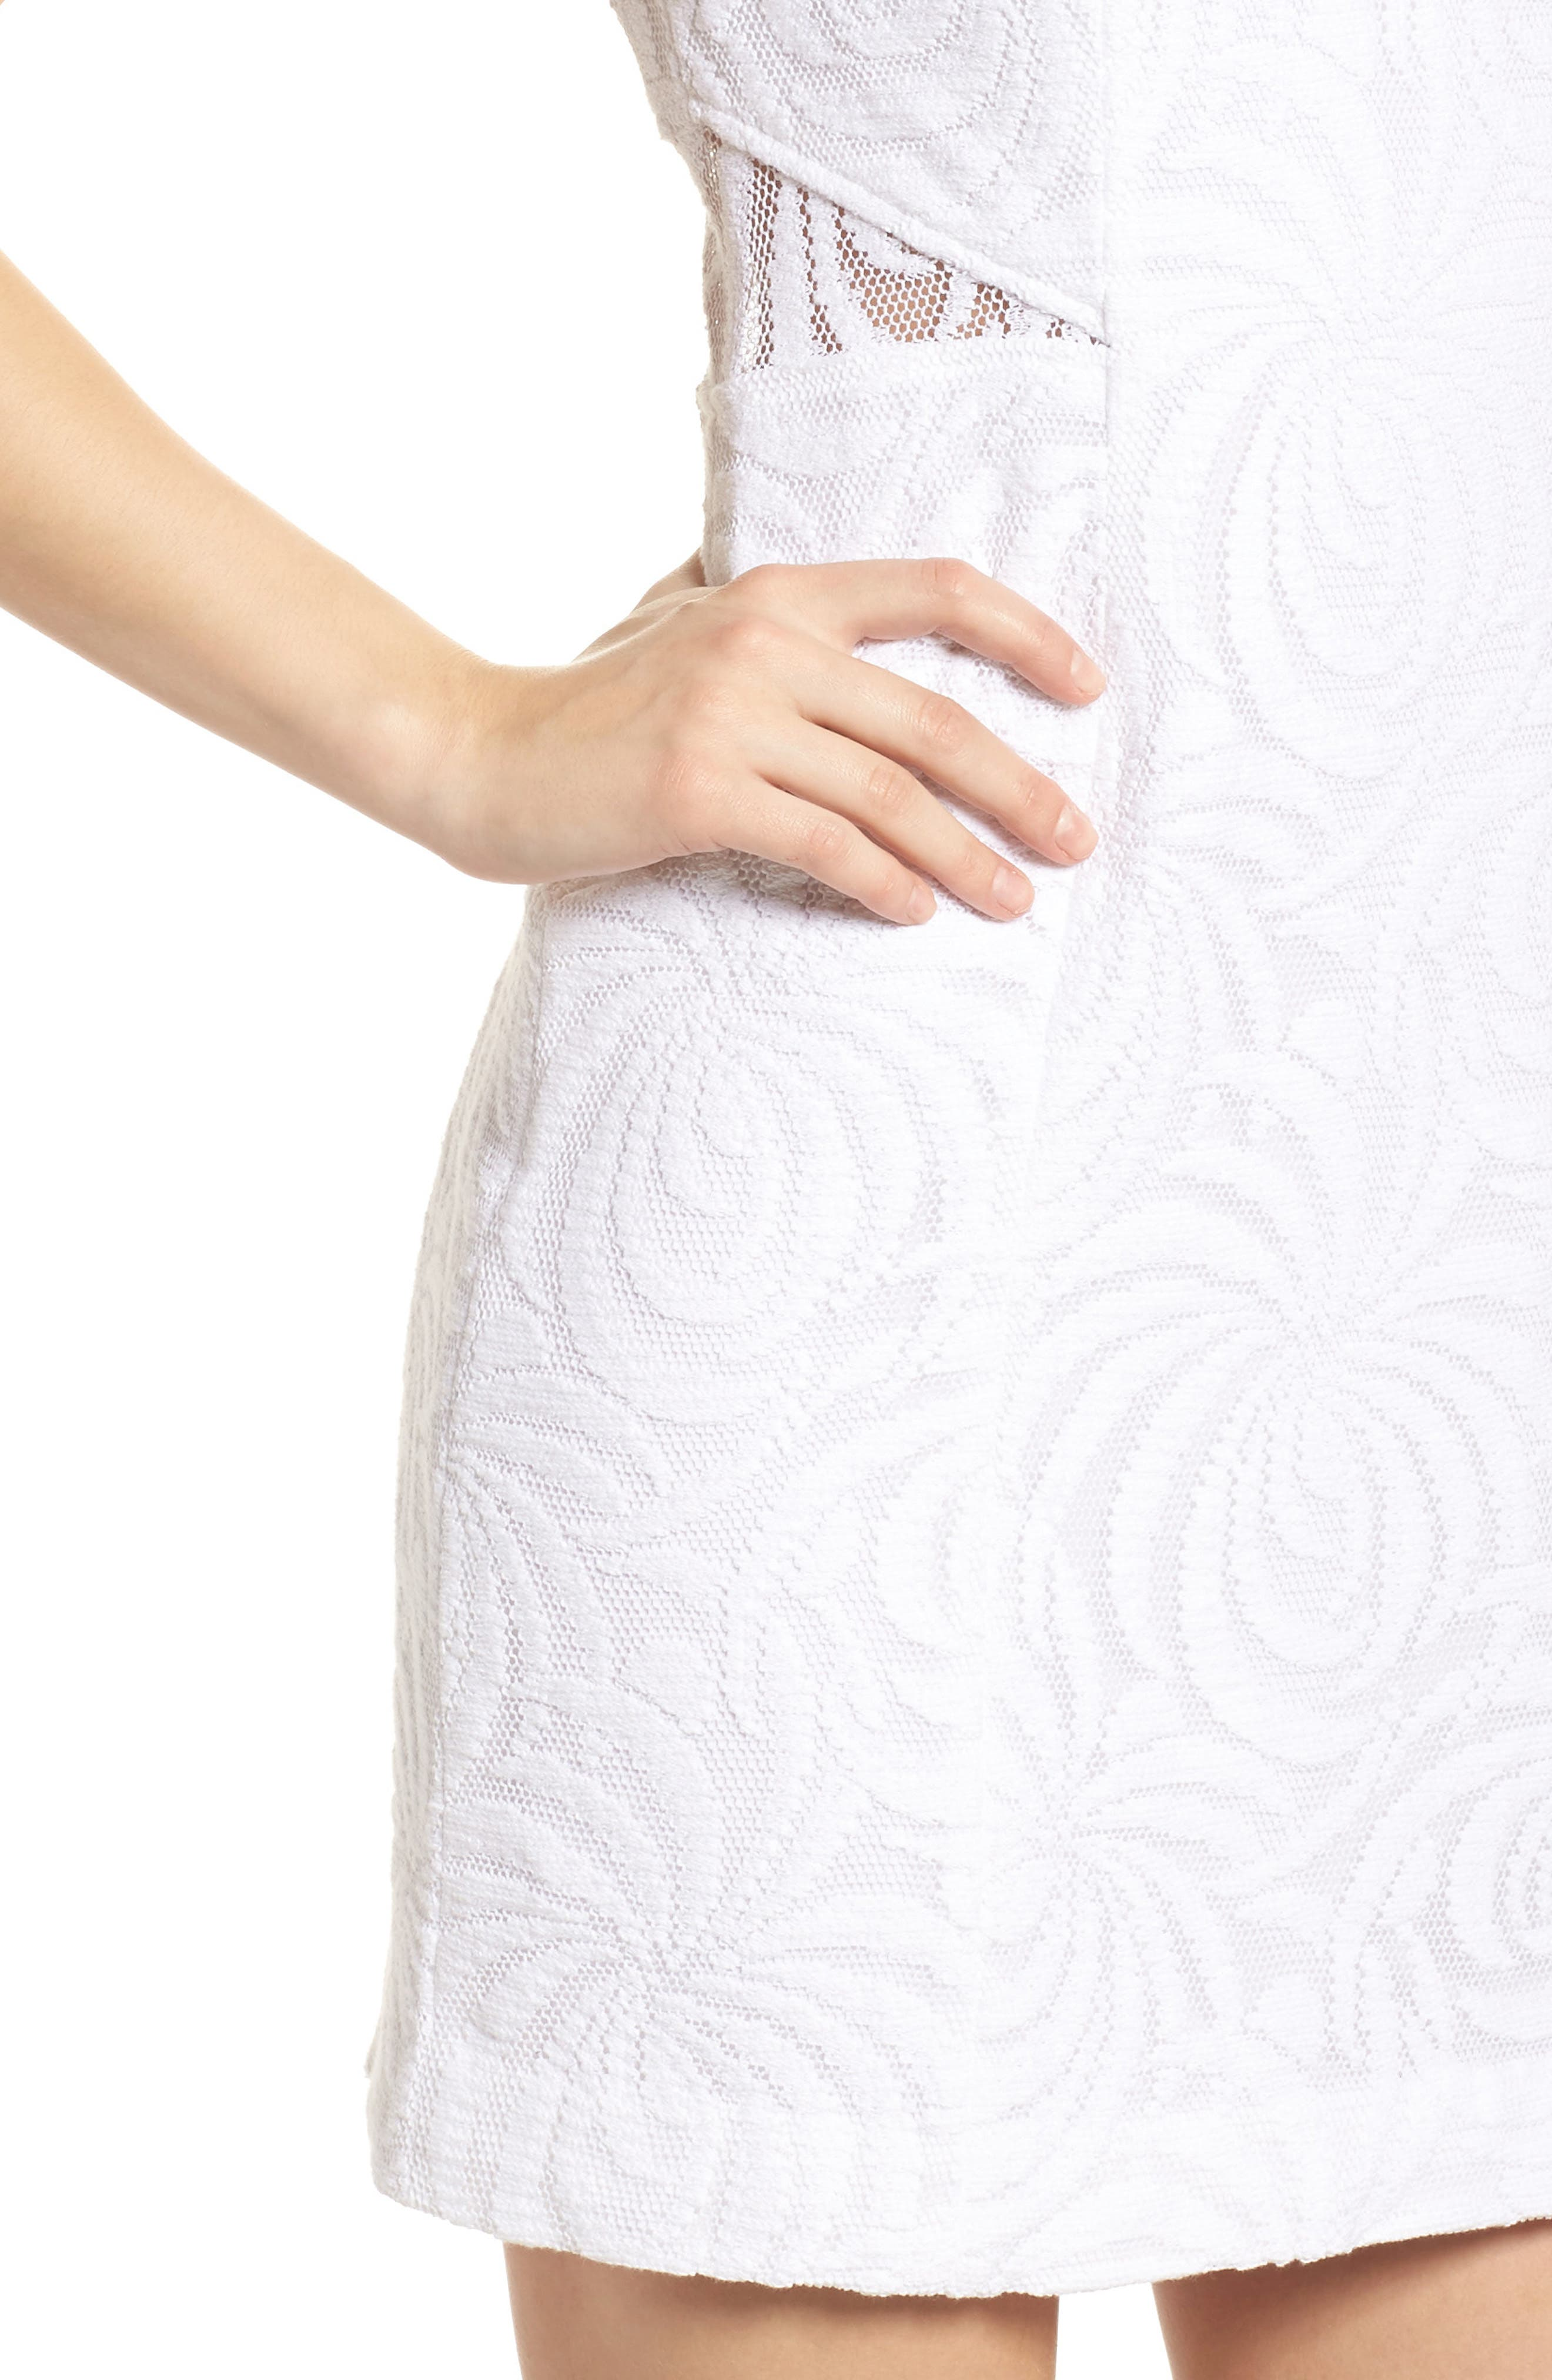 Blakely Lace Shift Dress,                             Alternate thumbnail 4, color,                             Resort White Sea Swirling Lace